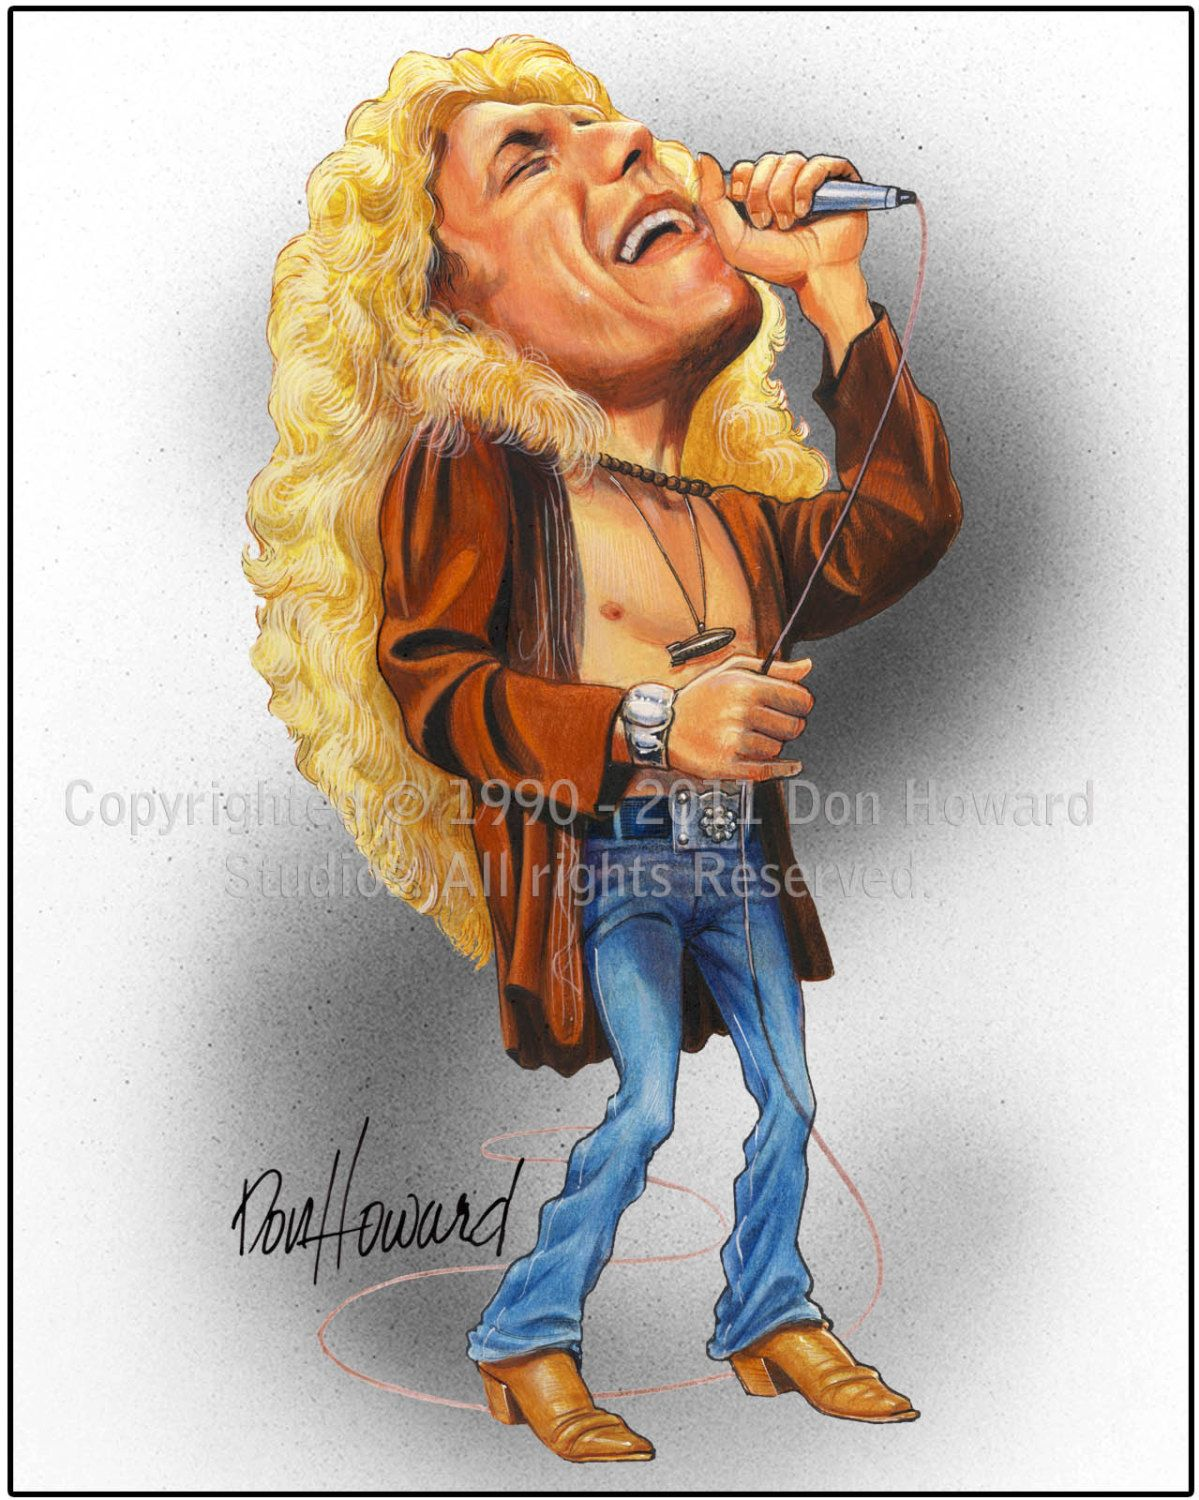 Robert Plant Limited Edition Celebrity Caricature By Don Howard By Donhowardstudios On Etsy Caricature Celebrity Caricatures Funny Caricatures